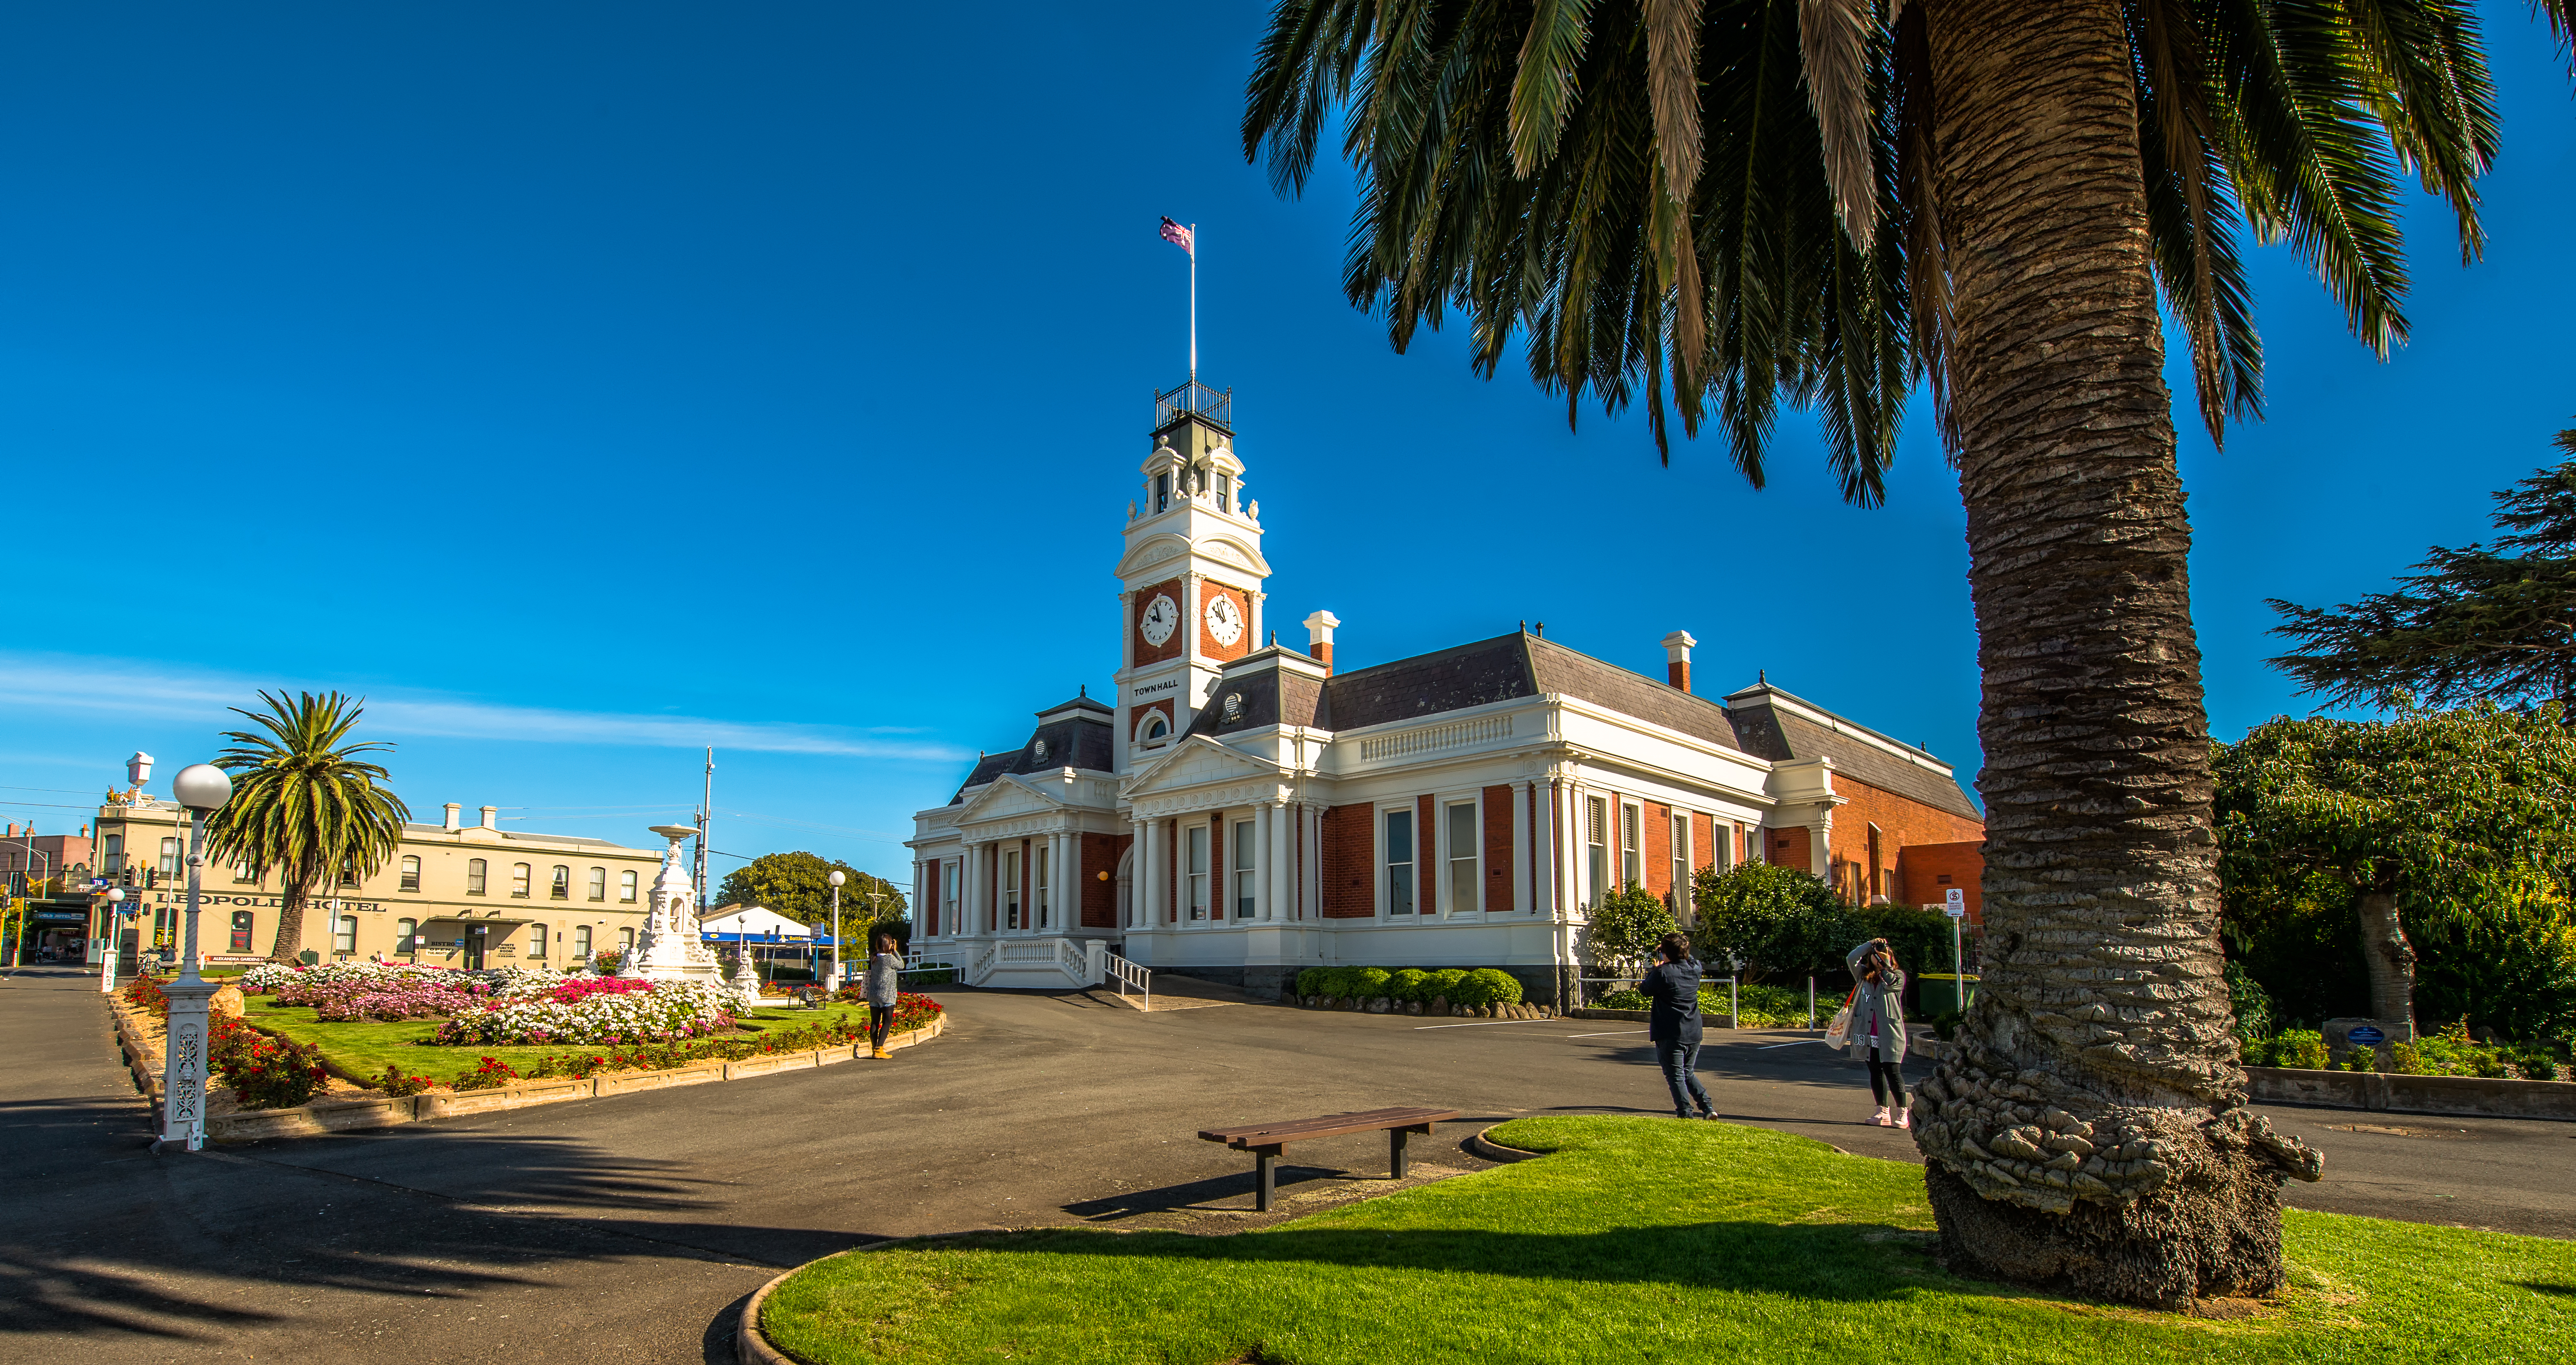 Council adopts strategic direction for next four years